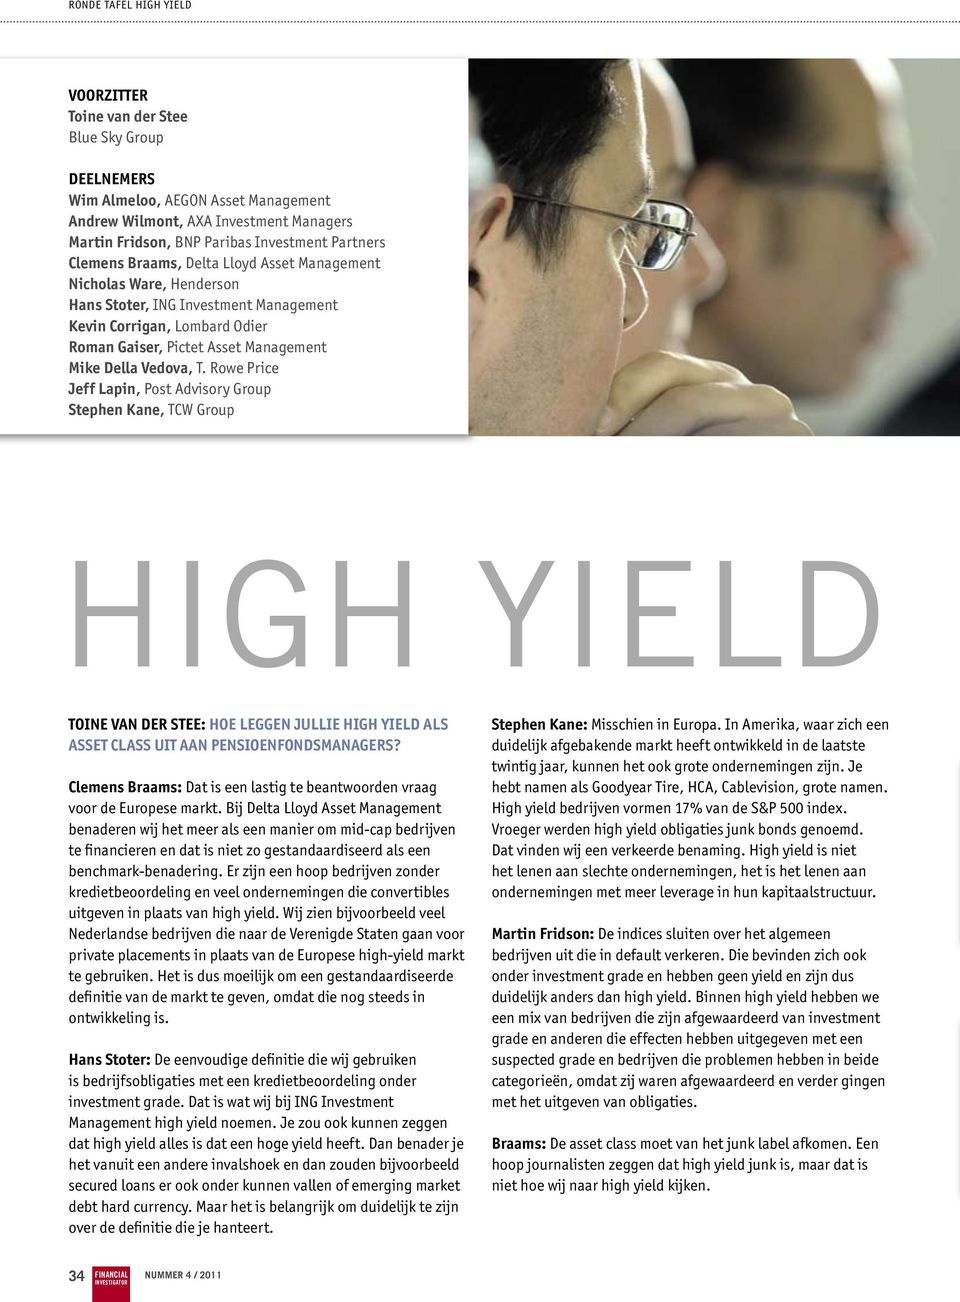 Vedova, T. Rowe Price Jeff Lapin, Post Advisory Group Stephen Kane, TCW Group High Yield Toine van der Stee: Hoe leggen jullie high yield als asset class uit aan pensioenfondsmanagers?